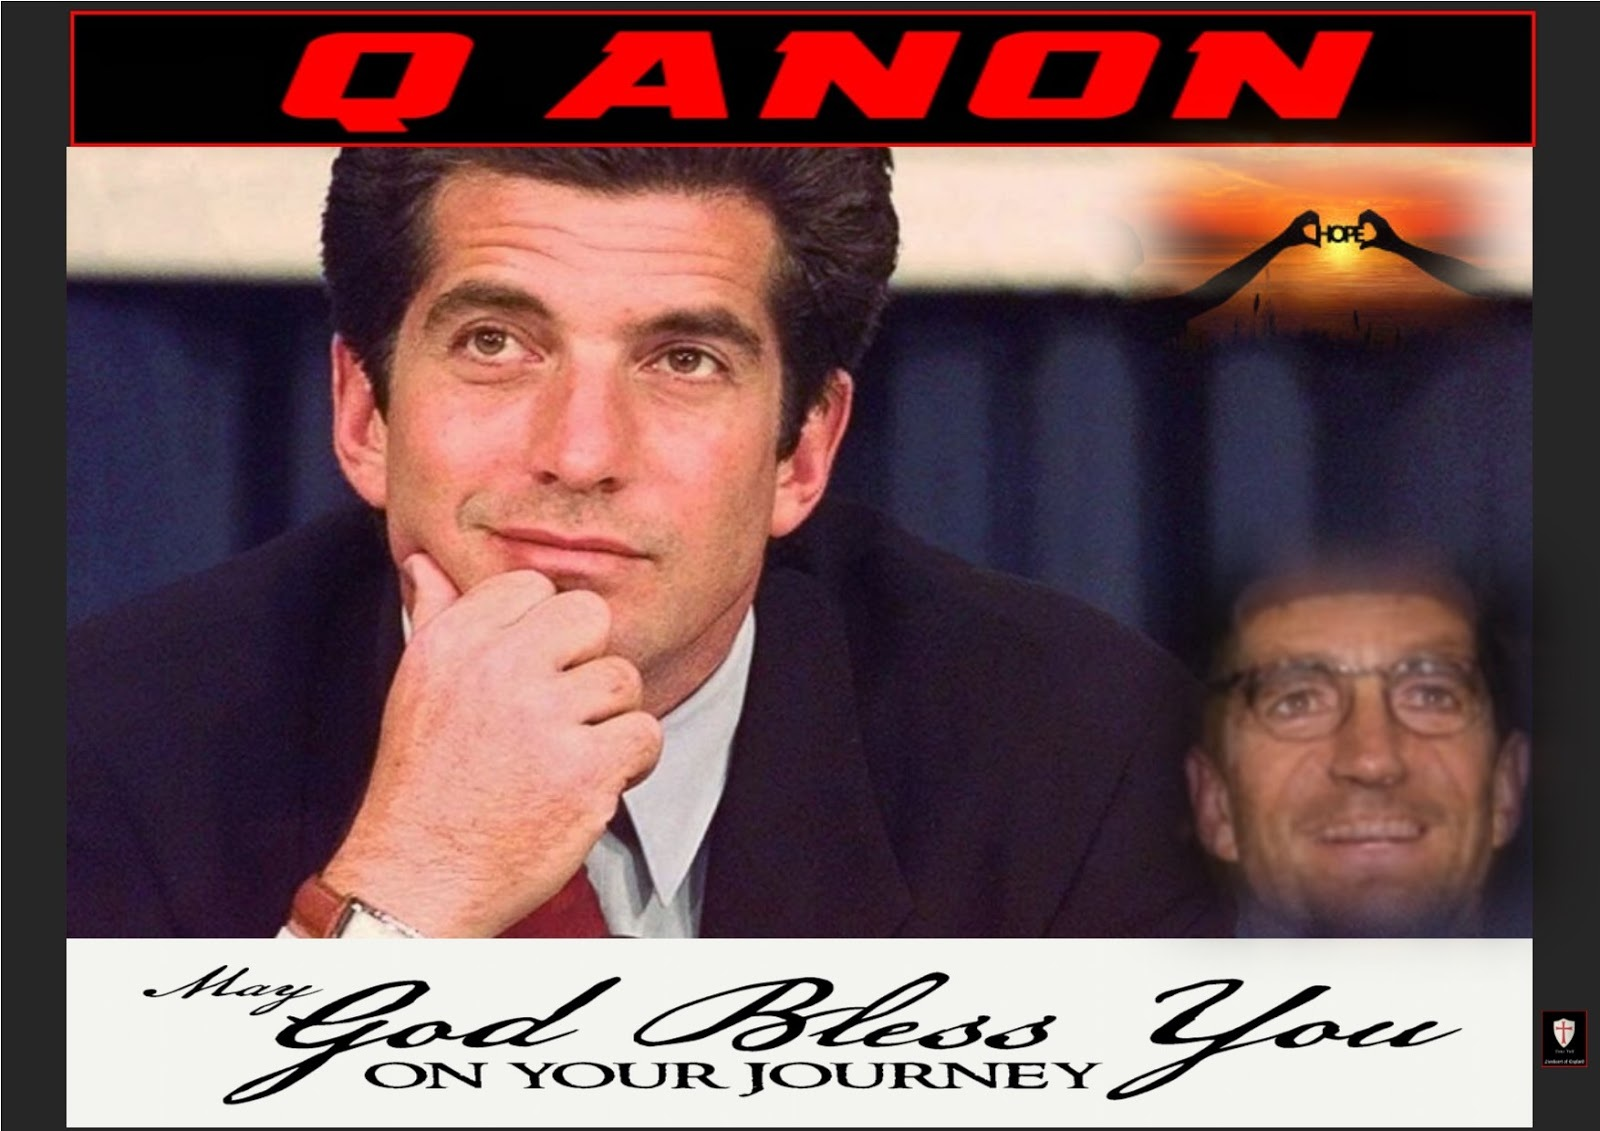 _q anon jfk jr hope